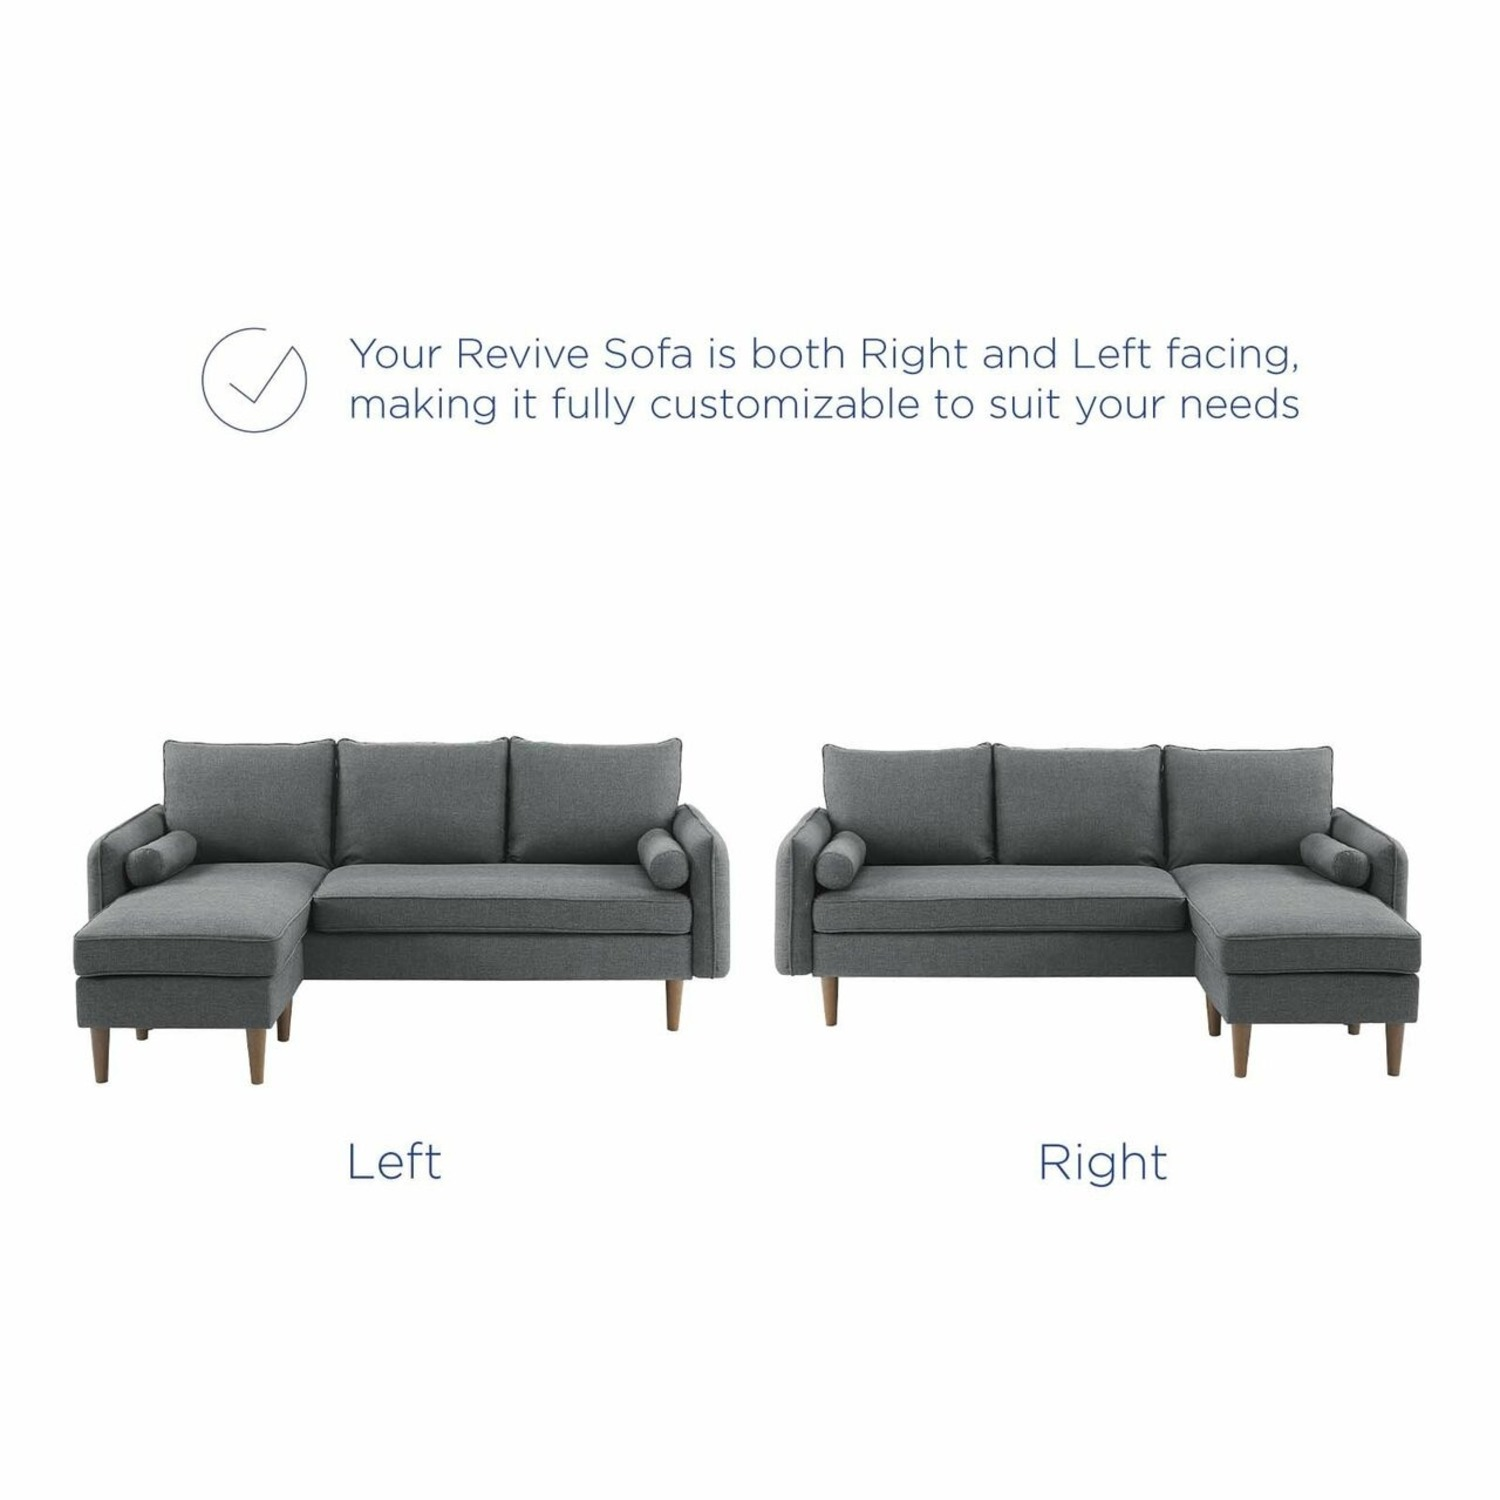 2-Piece Sectional Sofa In Gray Upholstery Finish - image-6